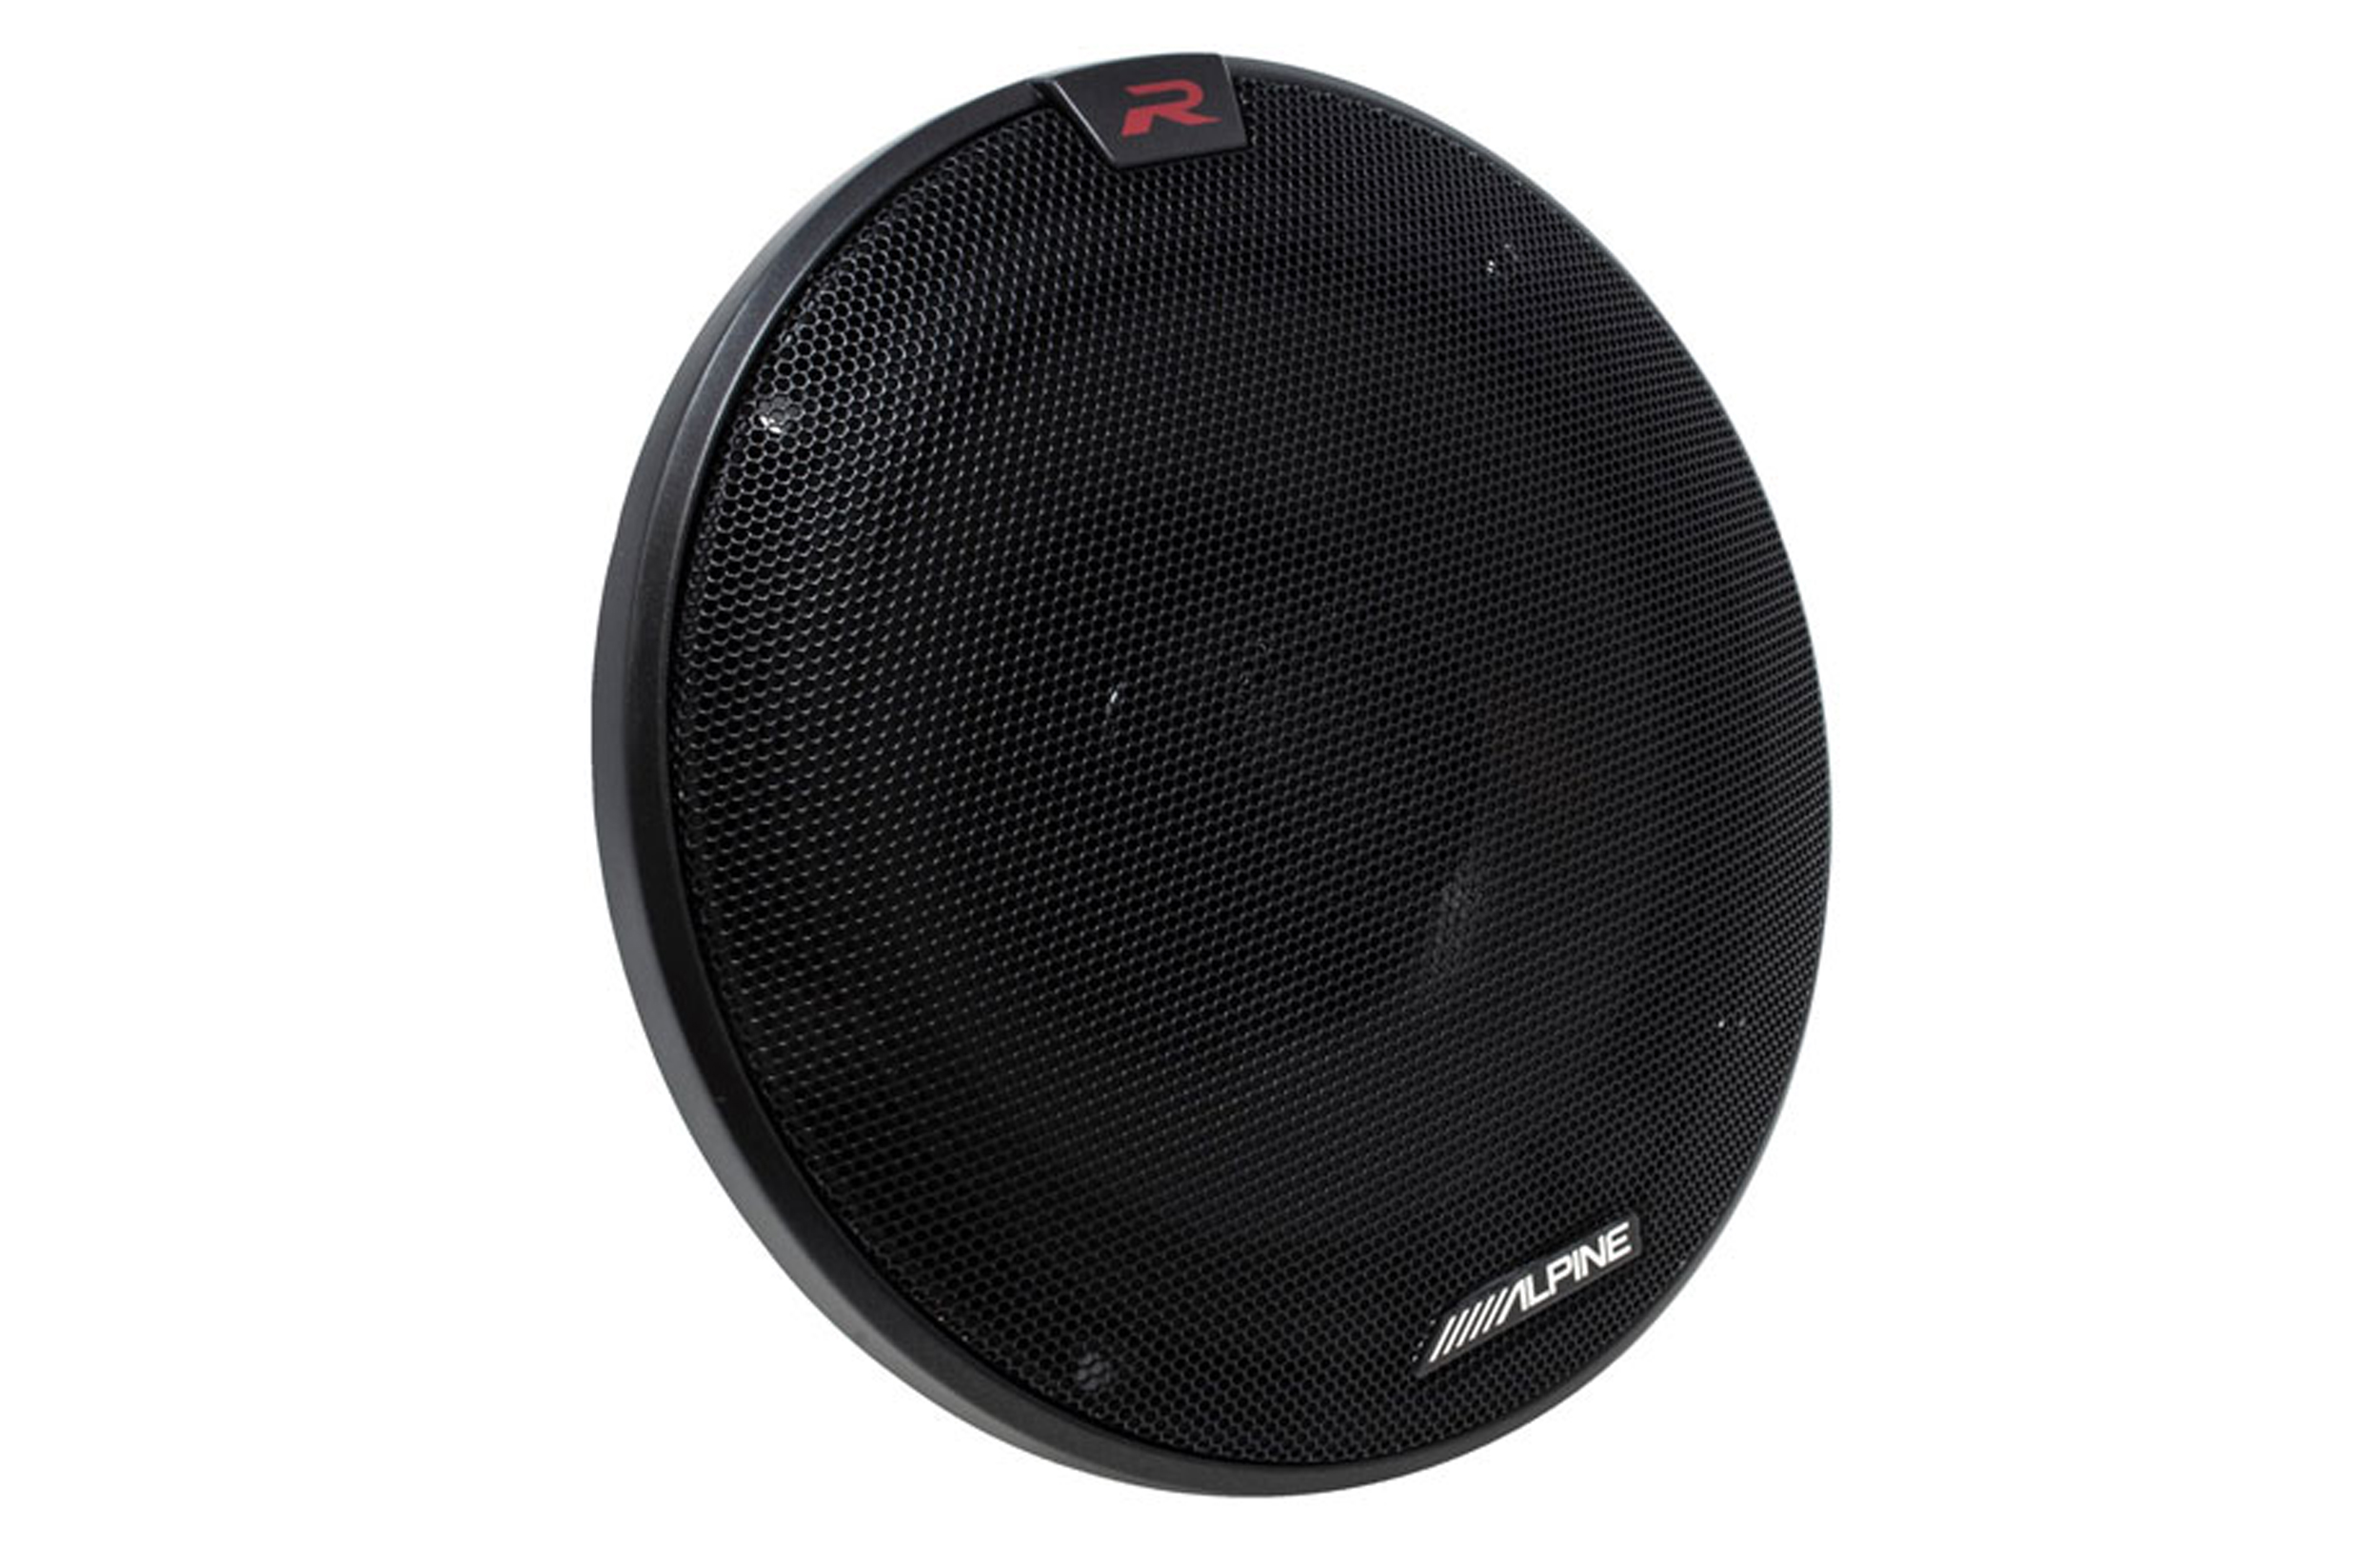 Alpine R-S65.2 R Series 6-1/2 inch 300 Watts Peak Power 2-Way Car Speakers